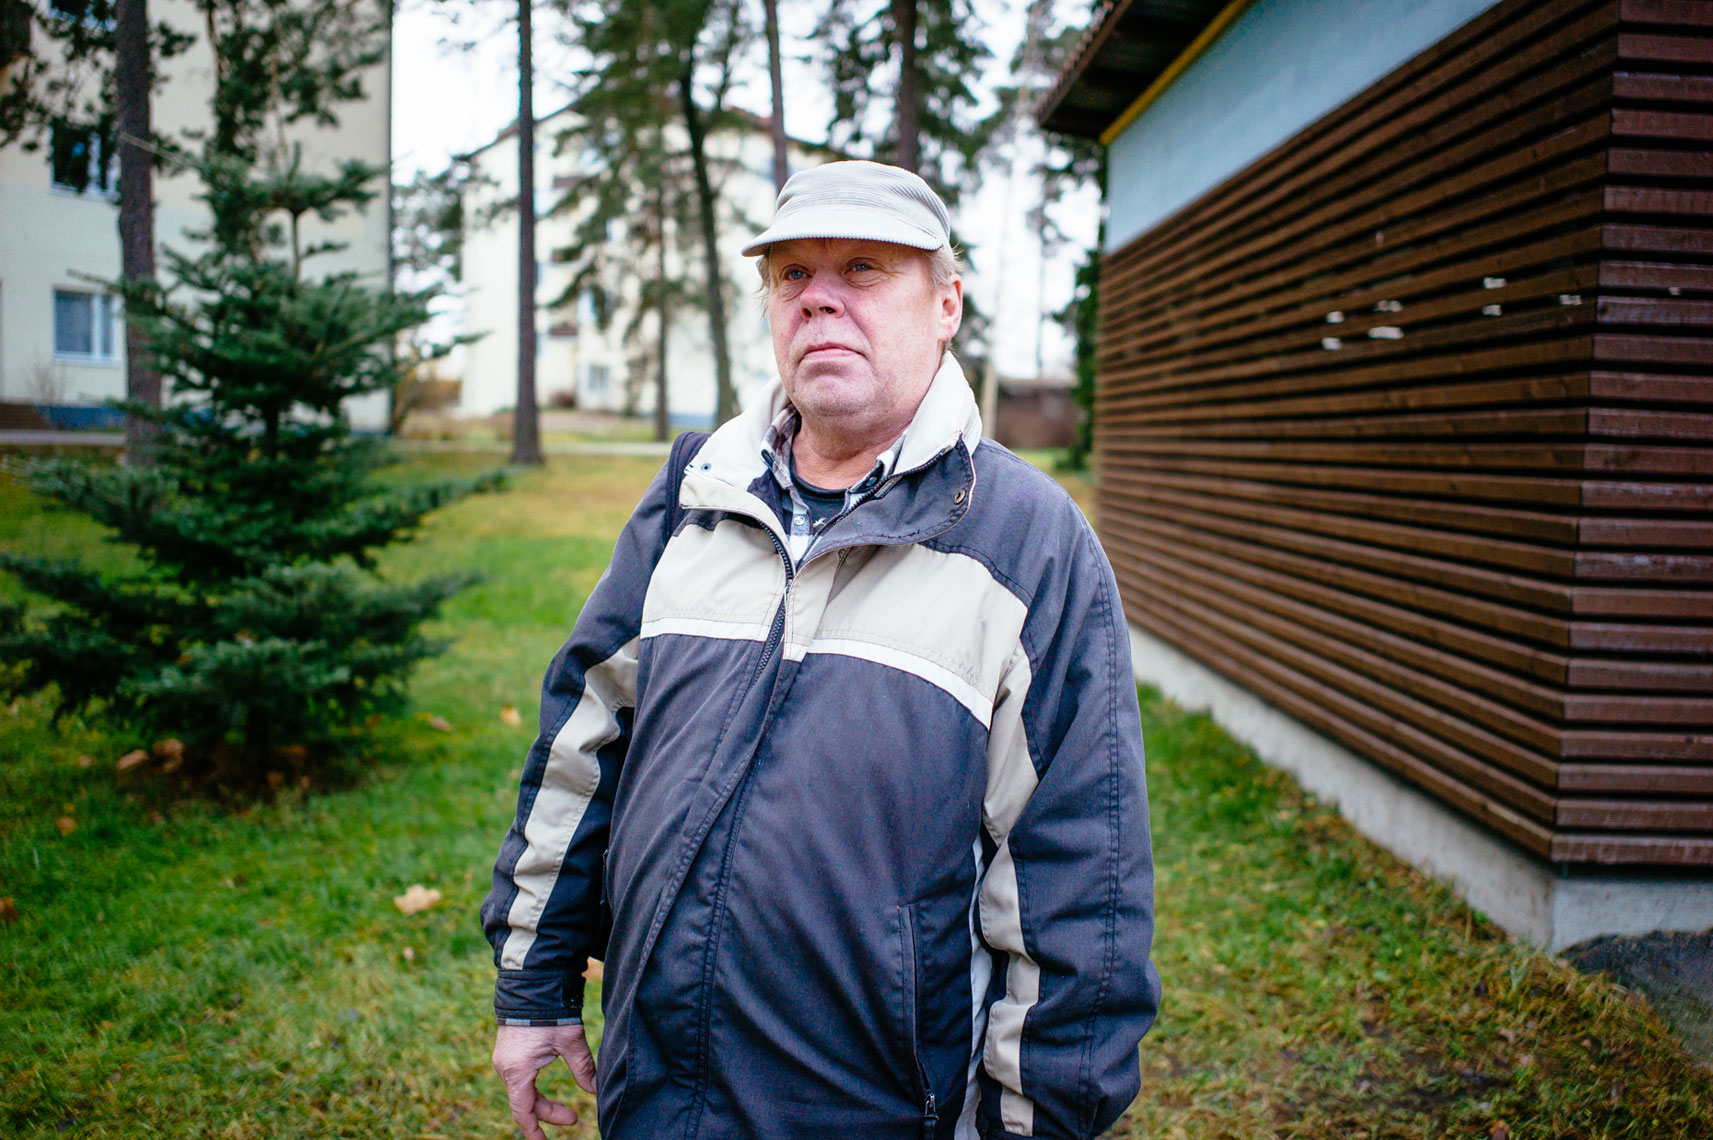 jon pack, photographer | the olympic city | helsinki, finland | portrait | village